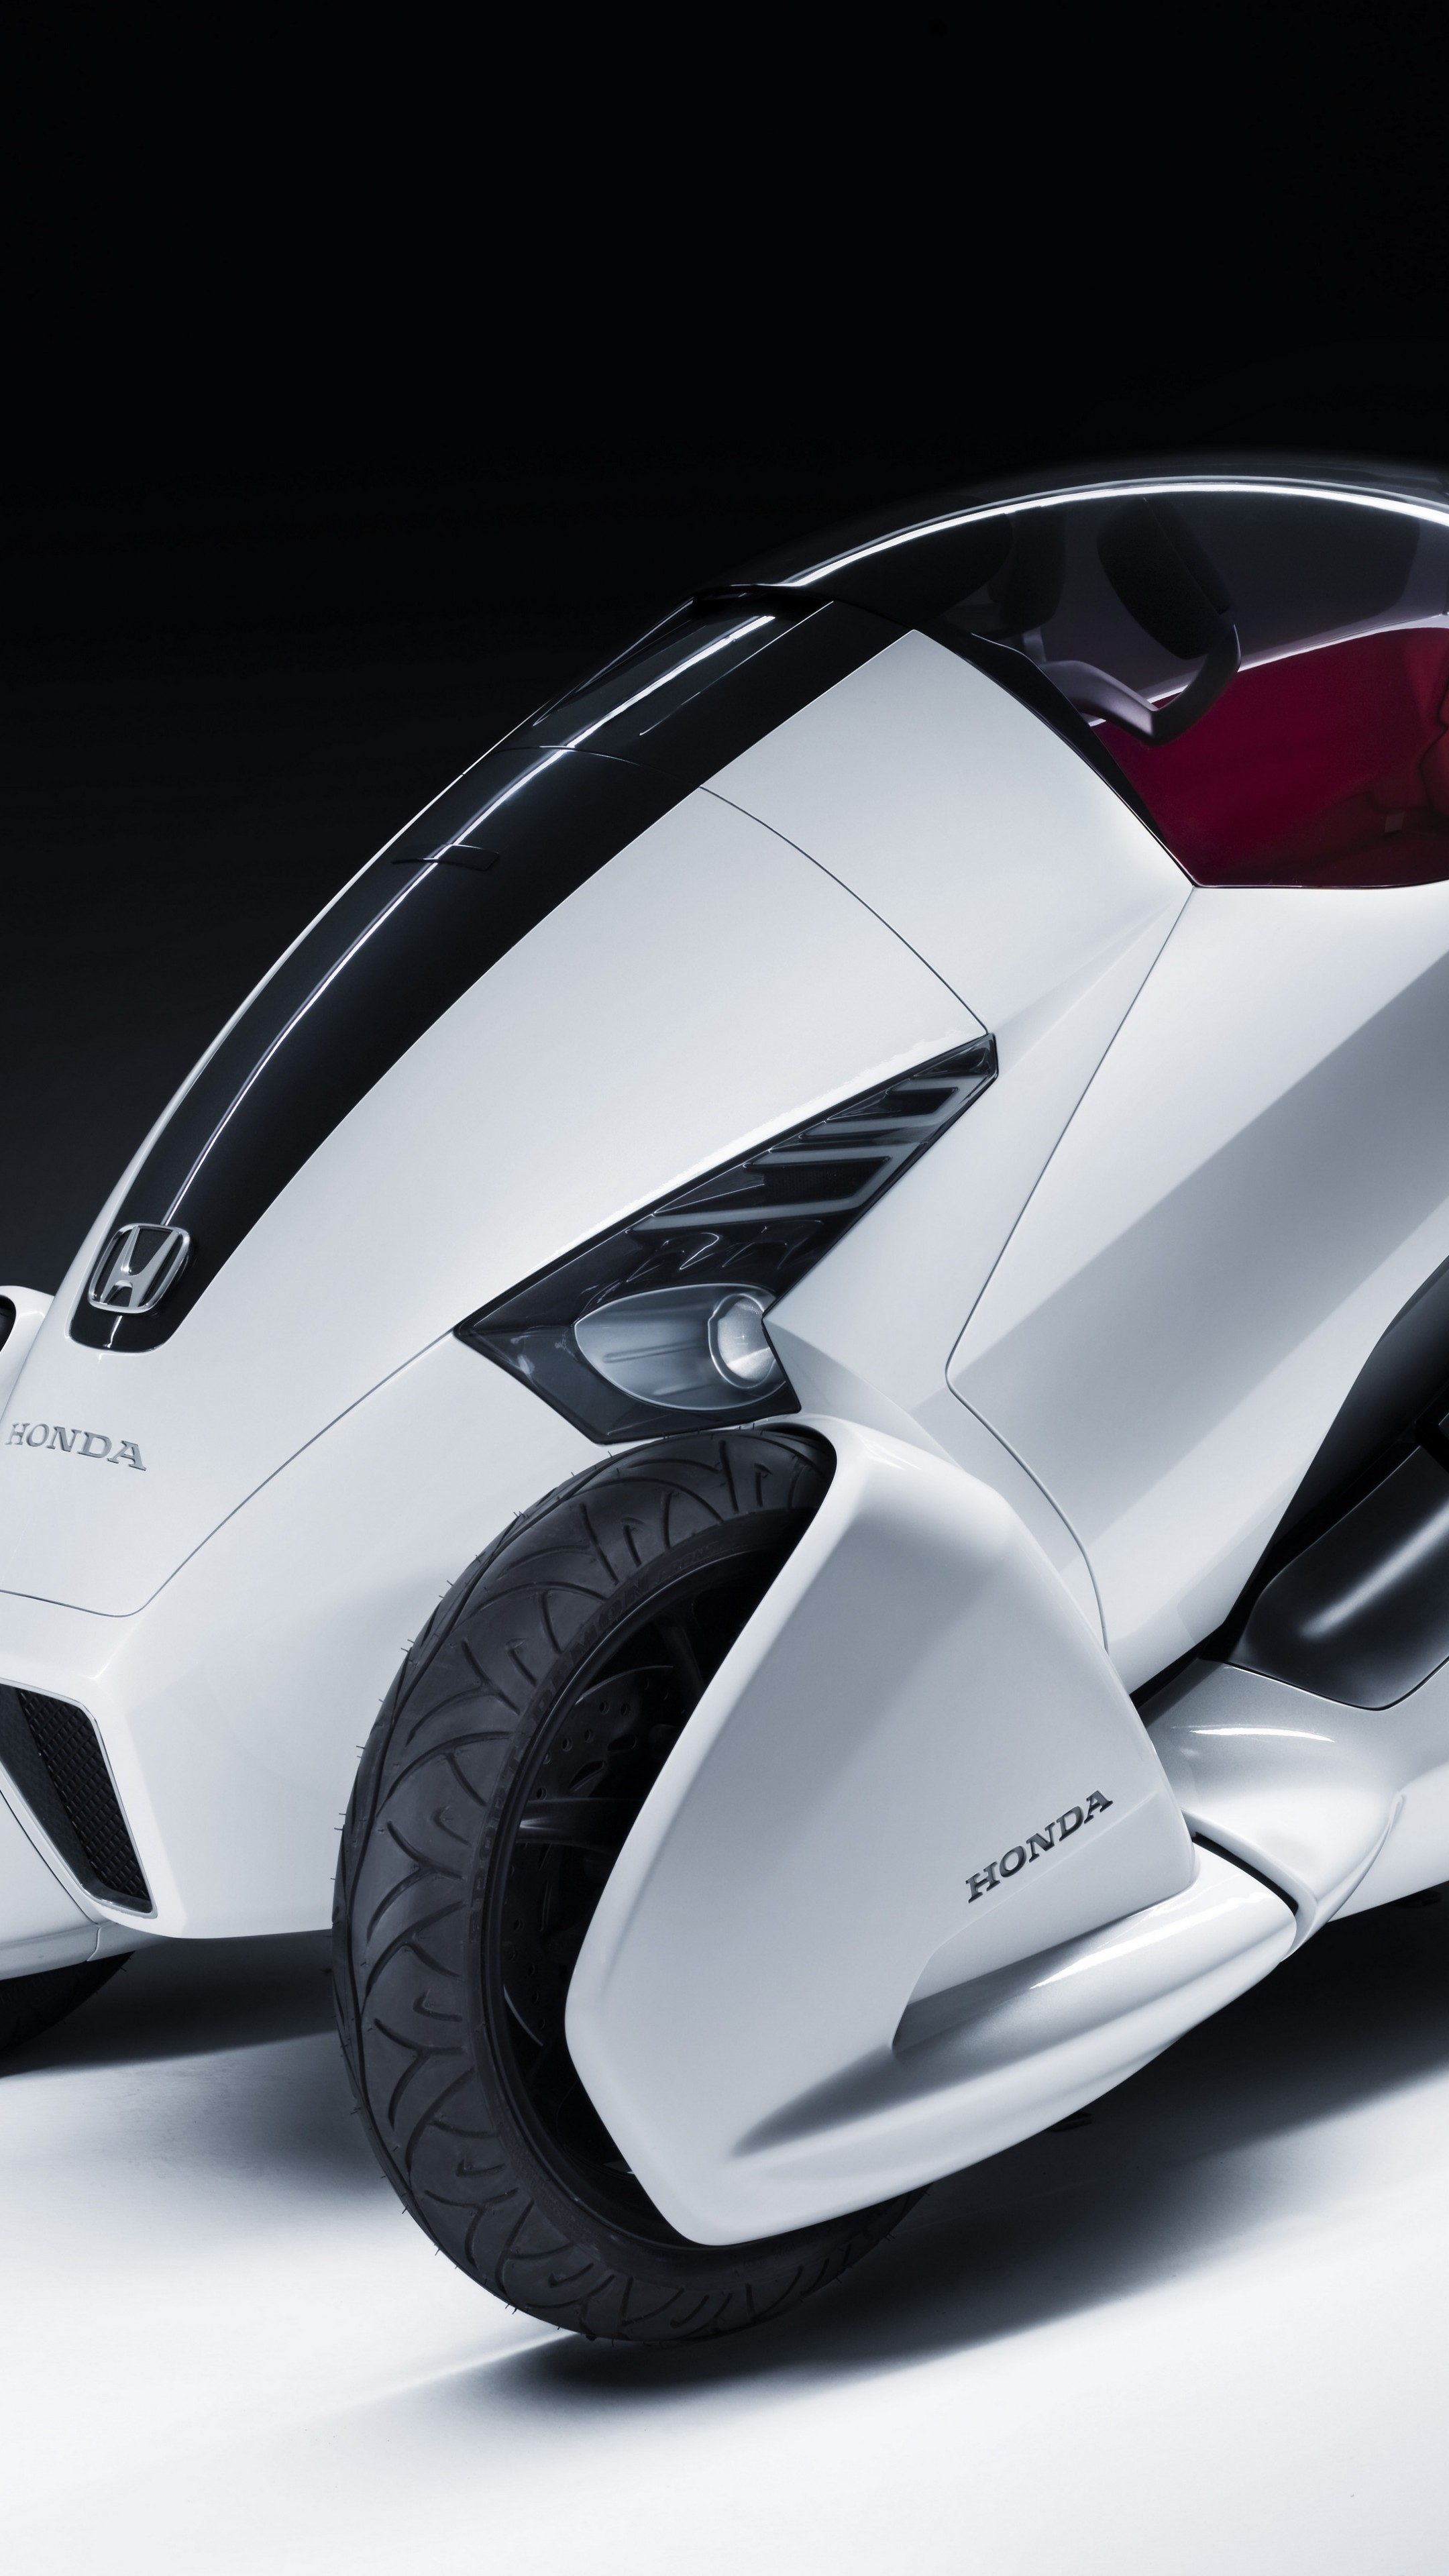 Cool Quotes Wallpapers Download Wallpaper Honda 3r C Concept Honda Three Wheeled